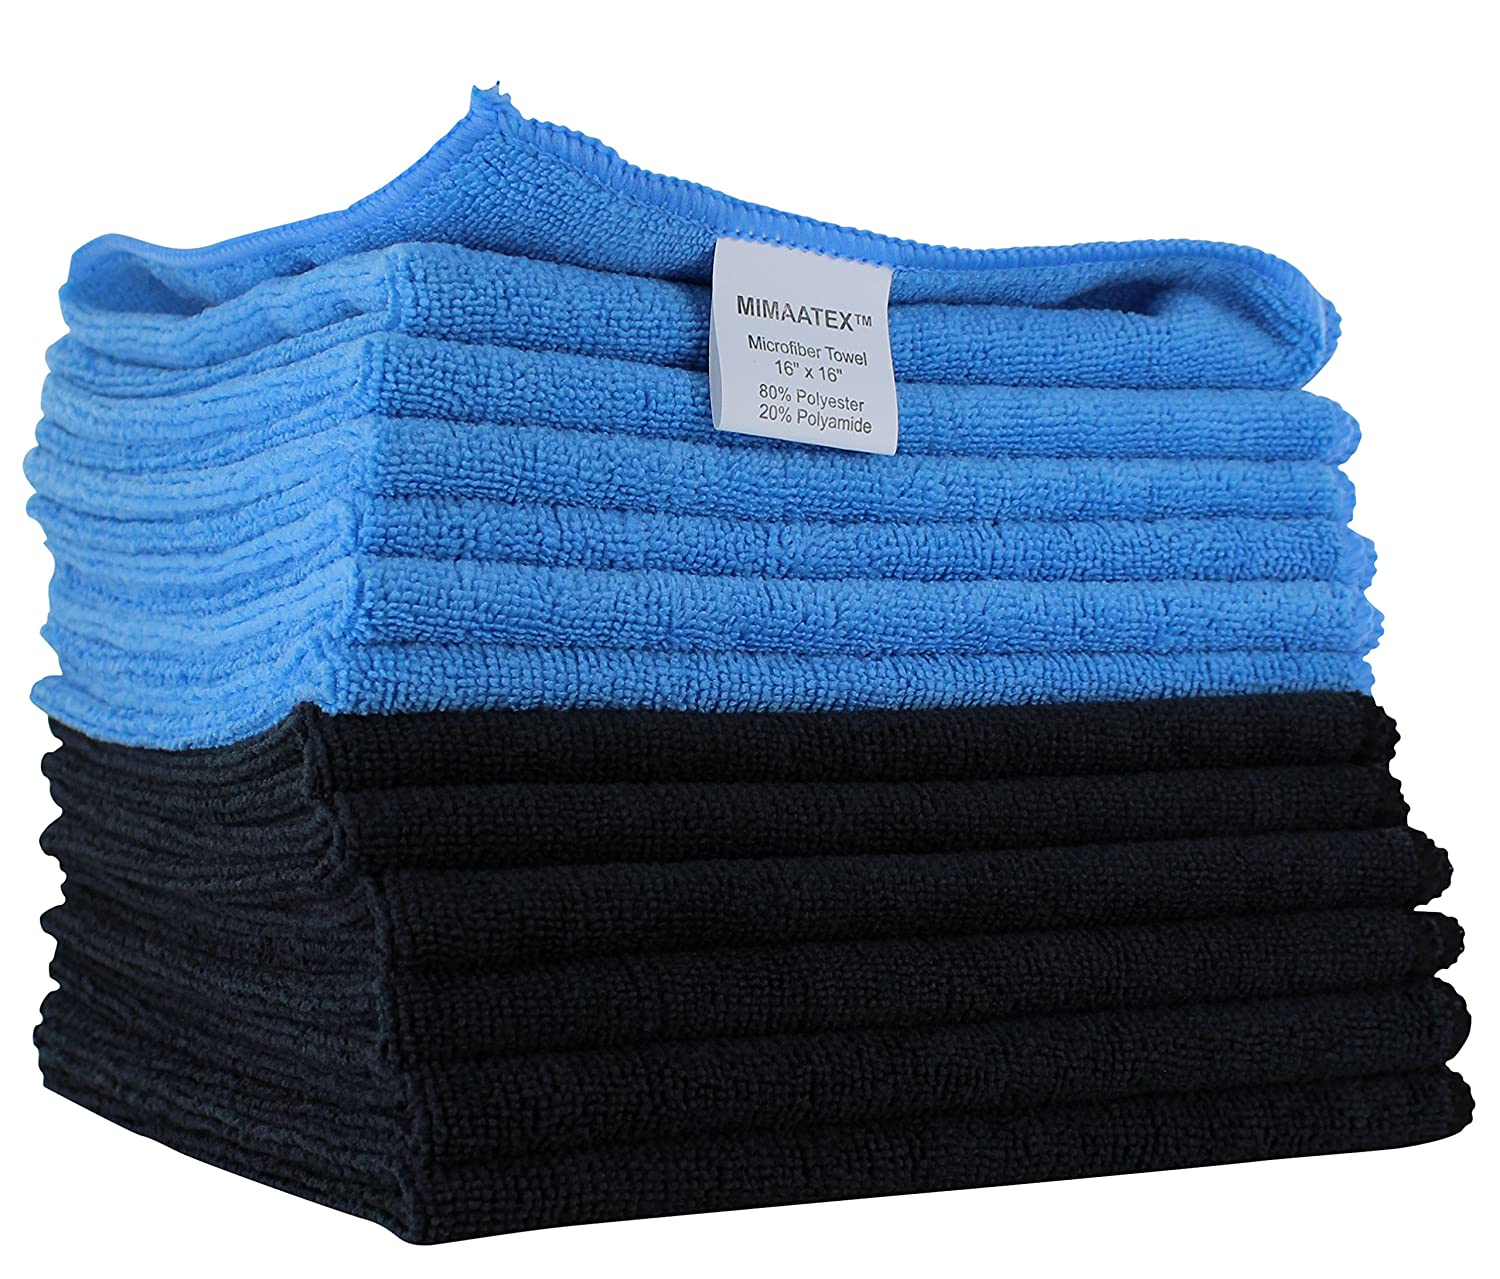 Microfiber Cleaning Cloth By MIMAATEX-12 Pack-16x16 inches-300 GSM-Lint Free-Streak Free MHF